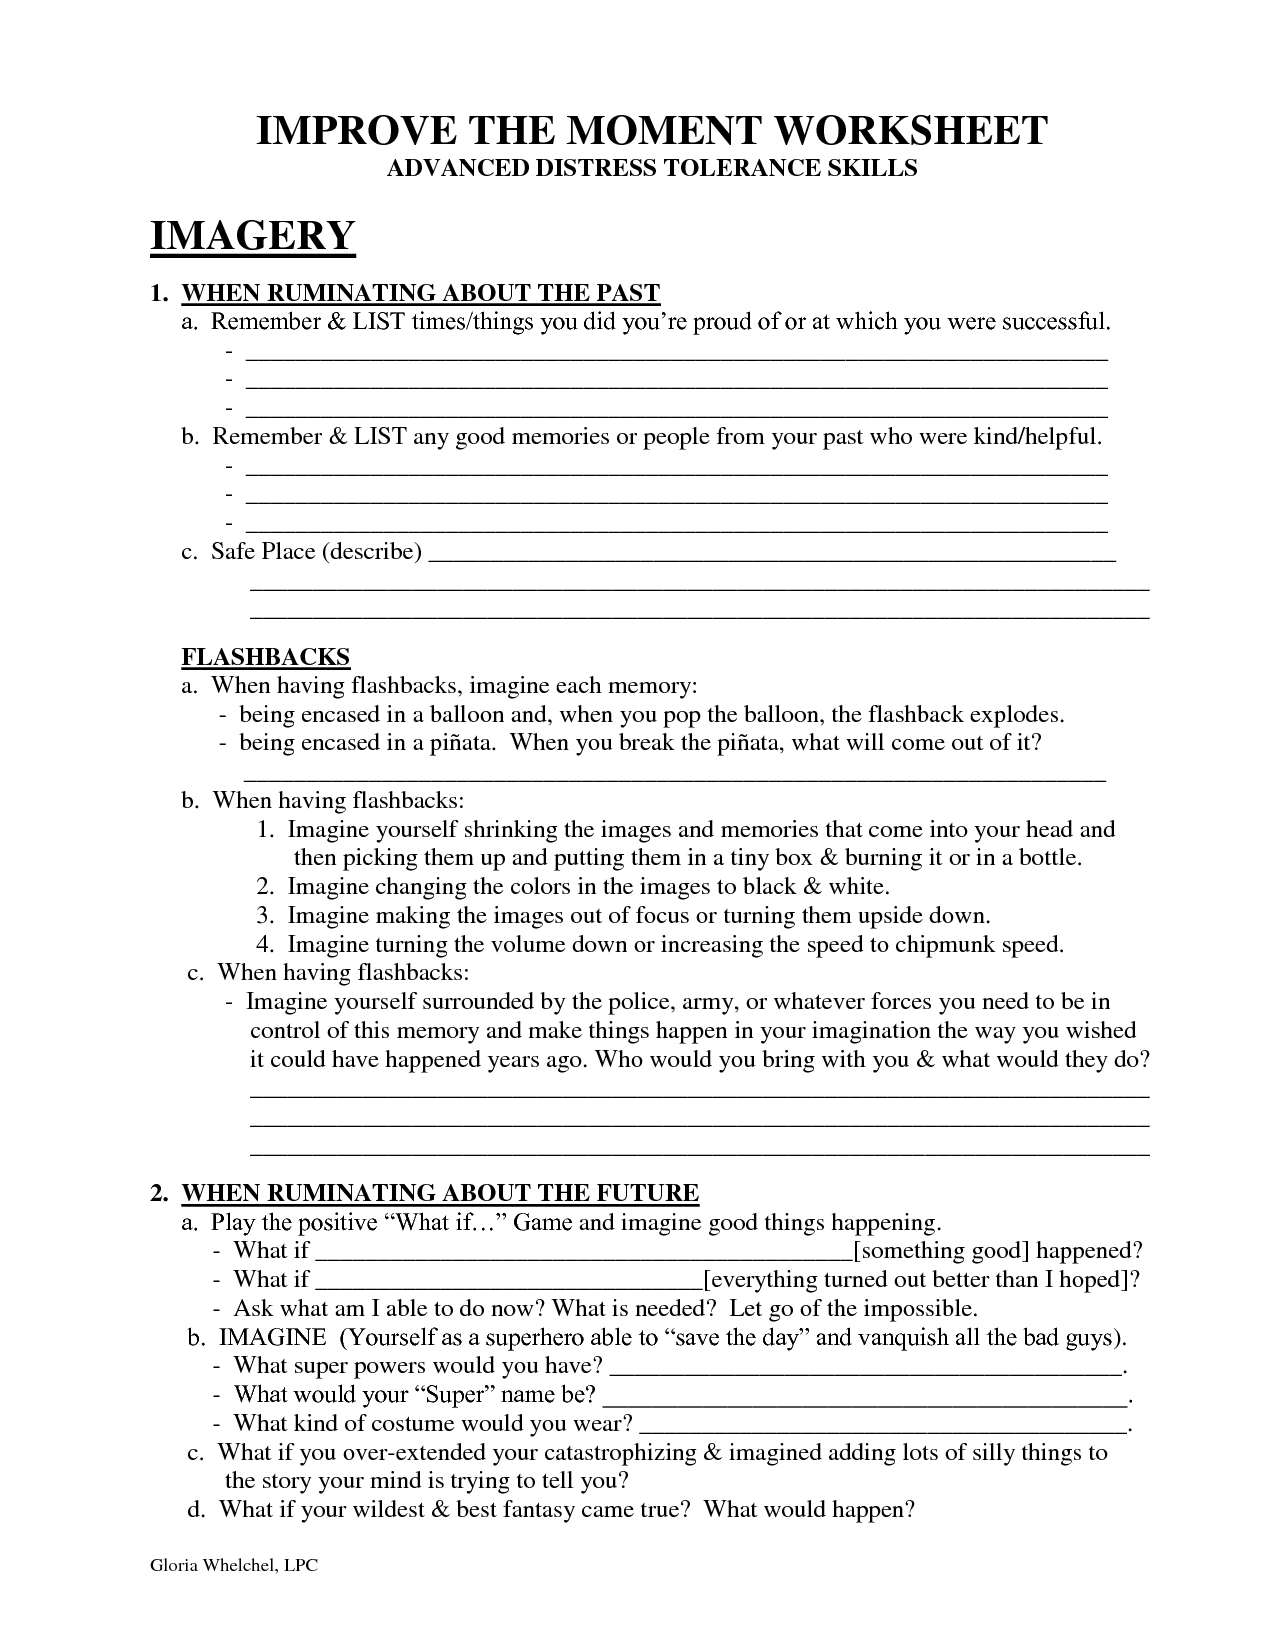 worksheet Mental Illness Worksheets improve the moment worksheet dbt self help therapy parenting help